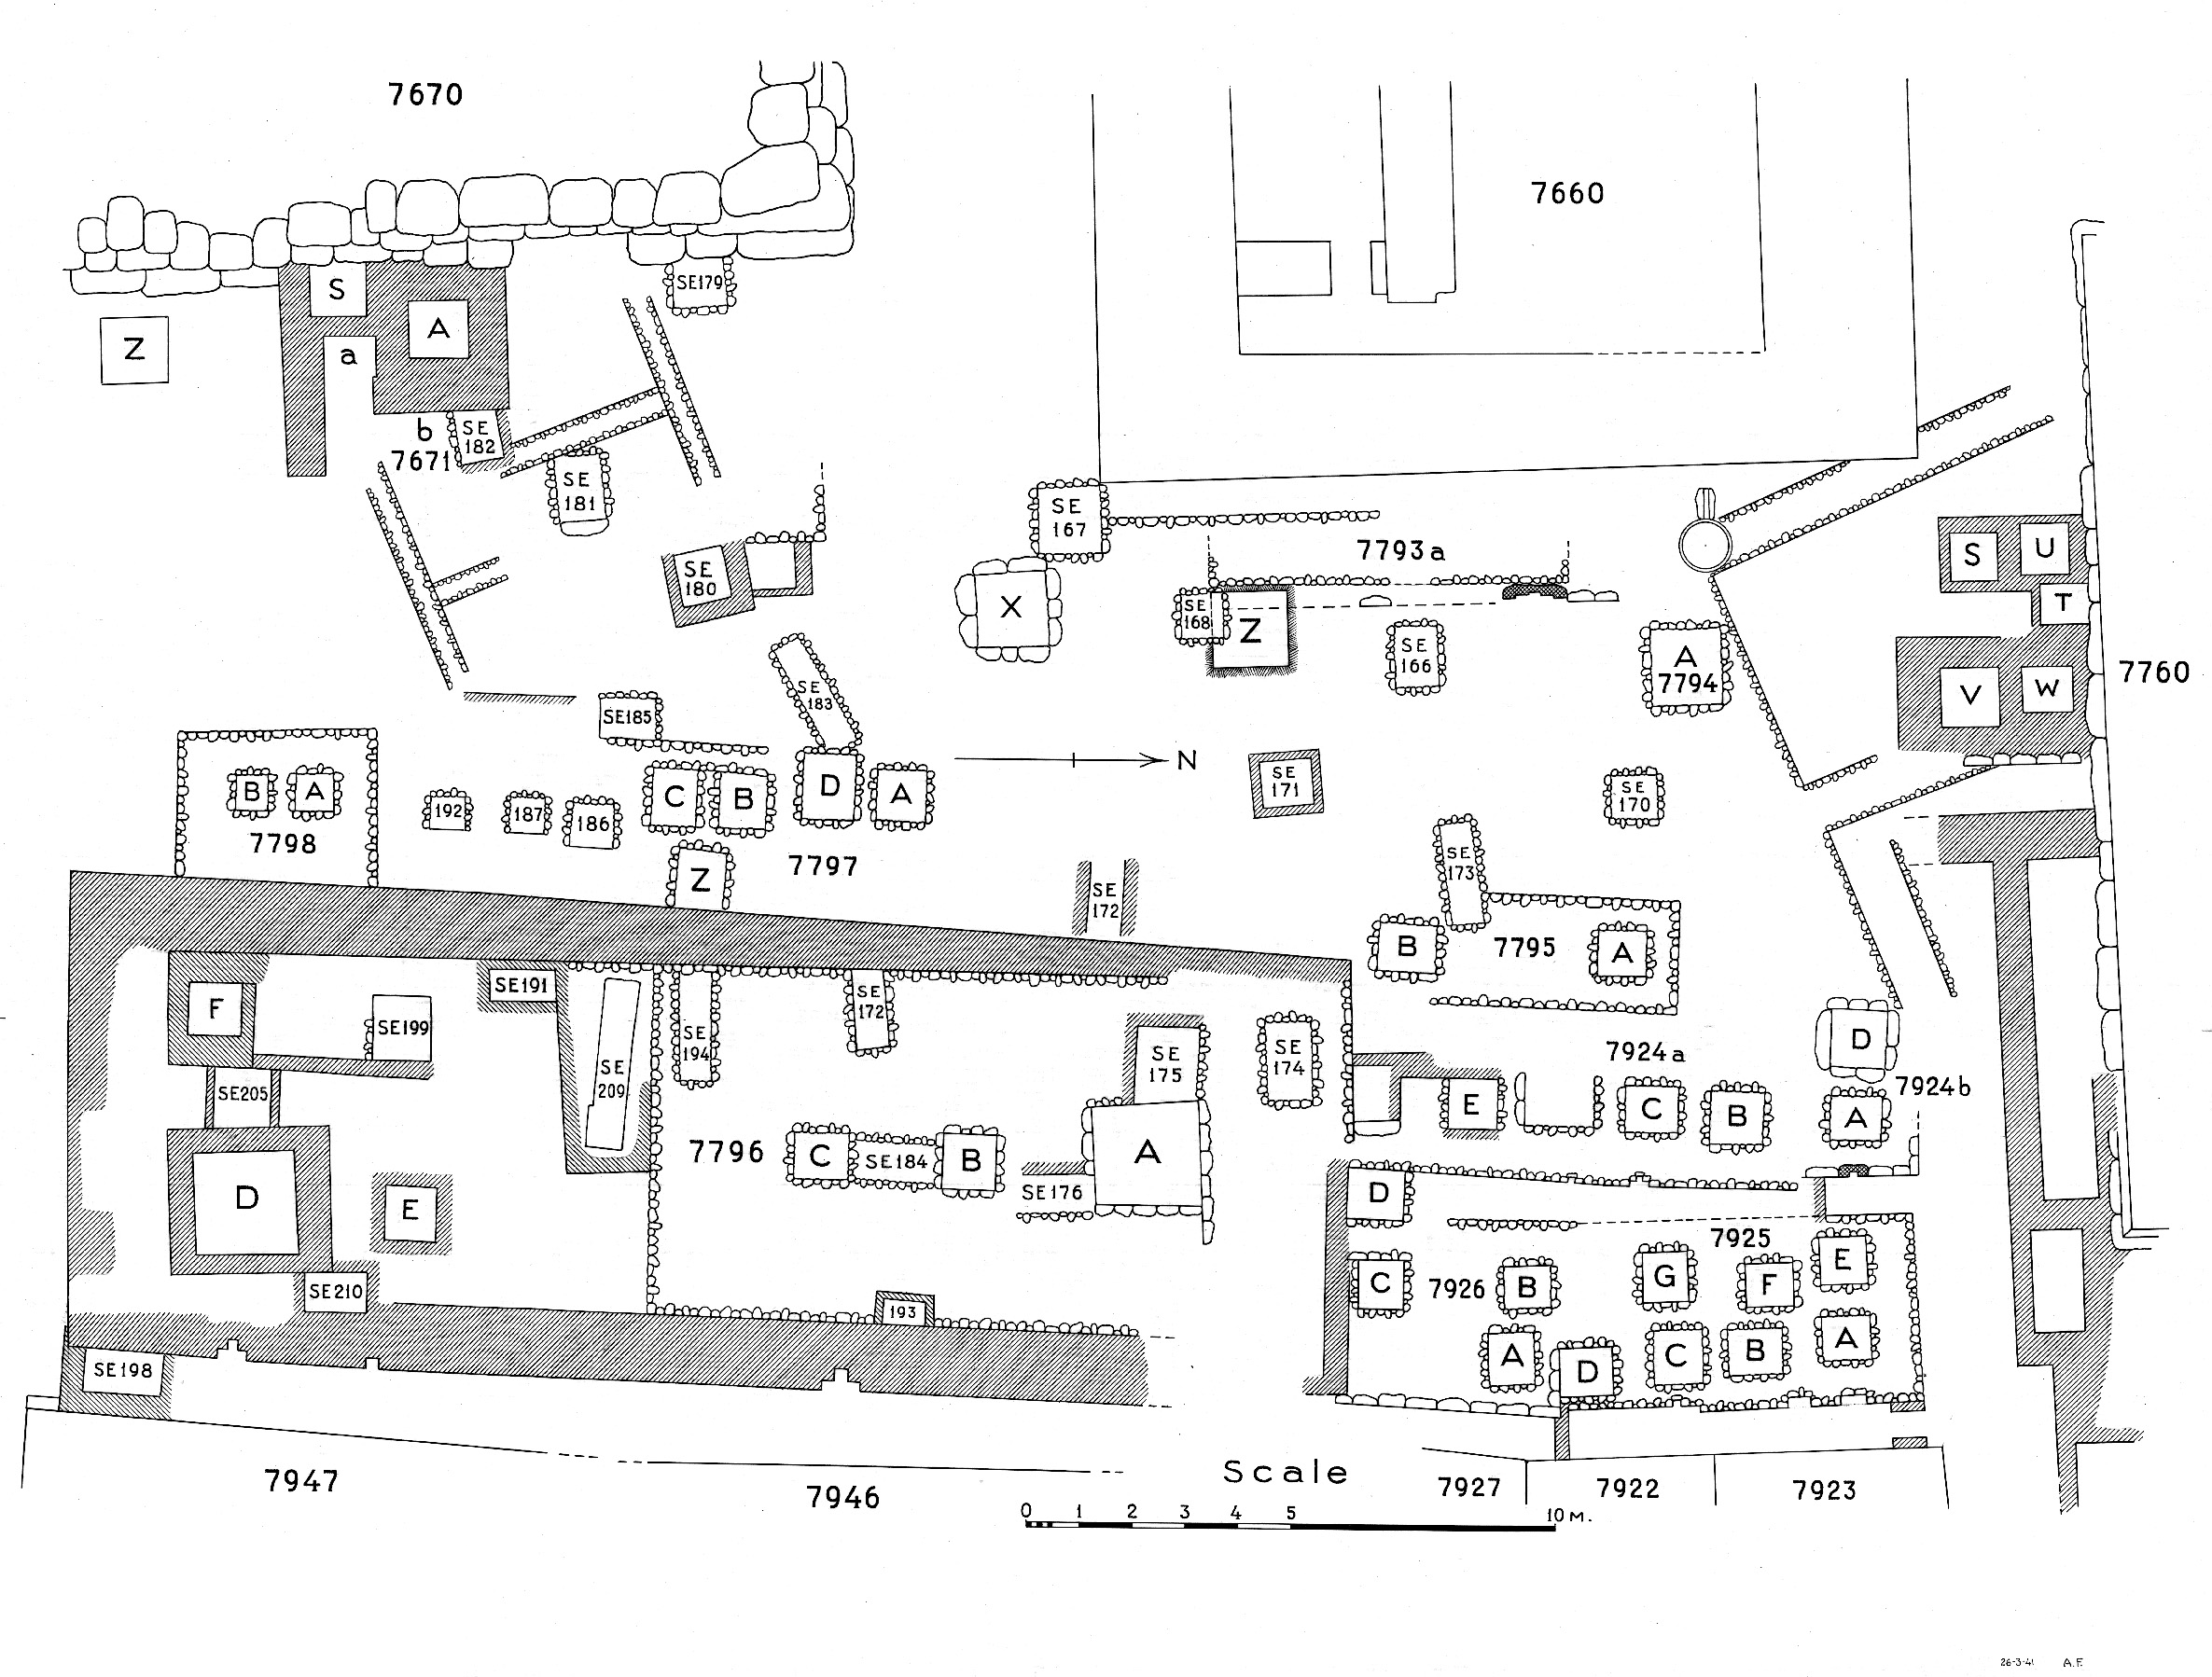 Maps and plans: Plan of cemetery G 7000: G 7600s, G 7700s, G 7900s (1 of 2)